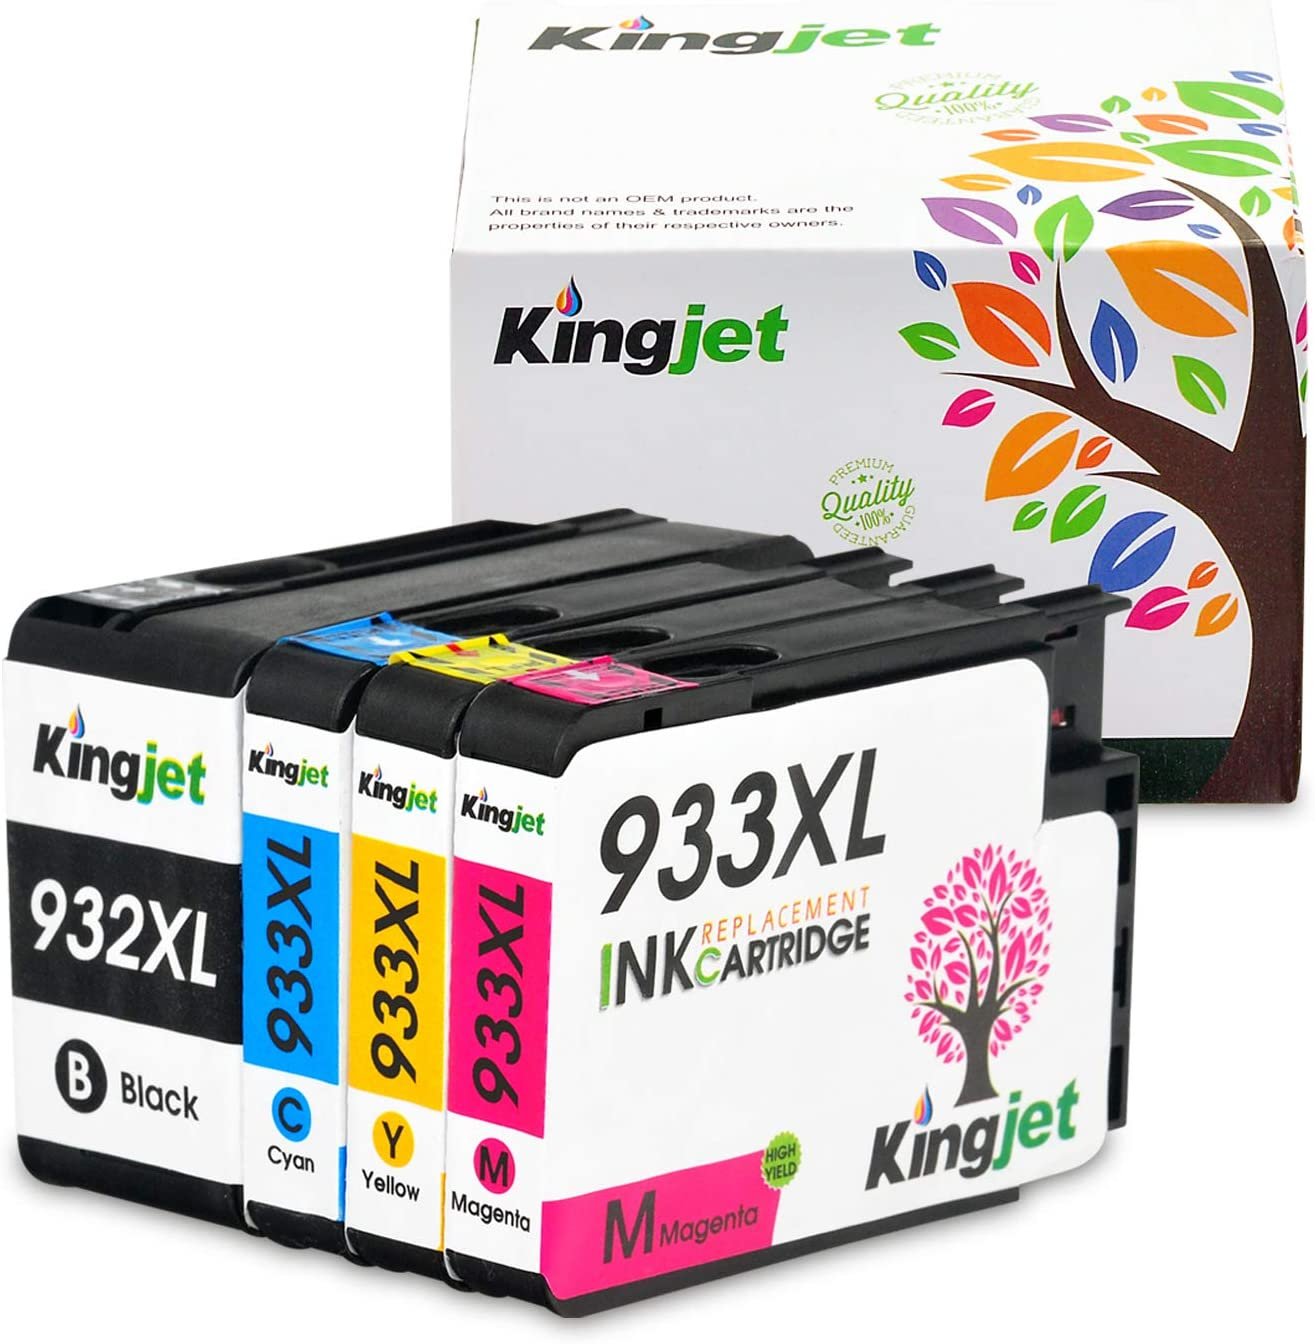 Kingjet Compatible Ink Cartridge Replacement for 932XL 933XL Work with Officejet 6100 6600 6700 7110 7510 7610 7612 Printers, (1SET)